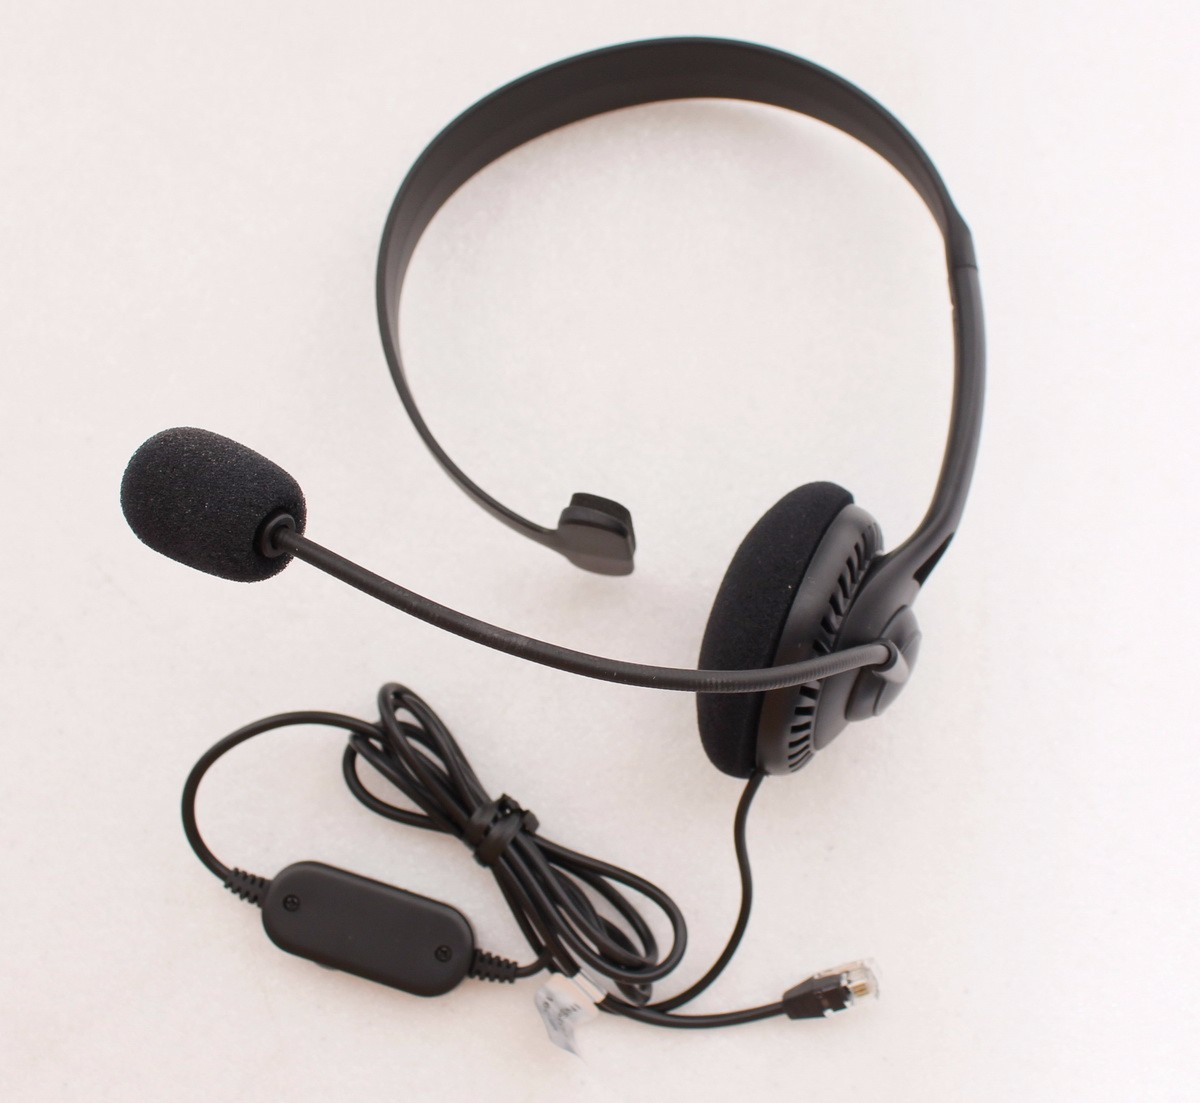 Details about 2-PACK) Insignia Landline Phone Hands-Free Headset RJ9  Connection Volume Mute